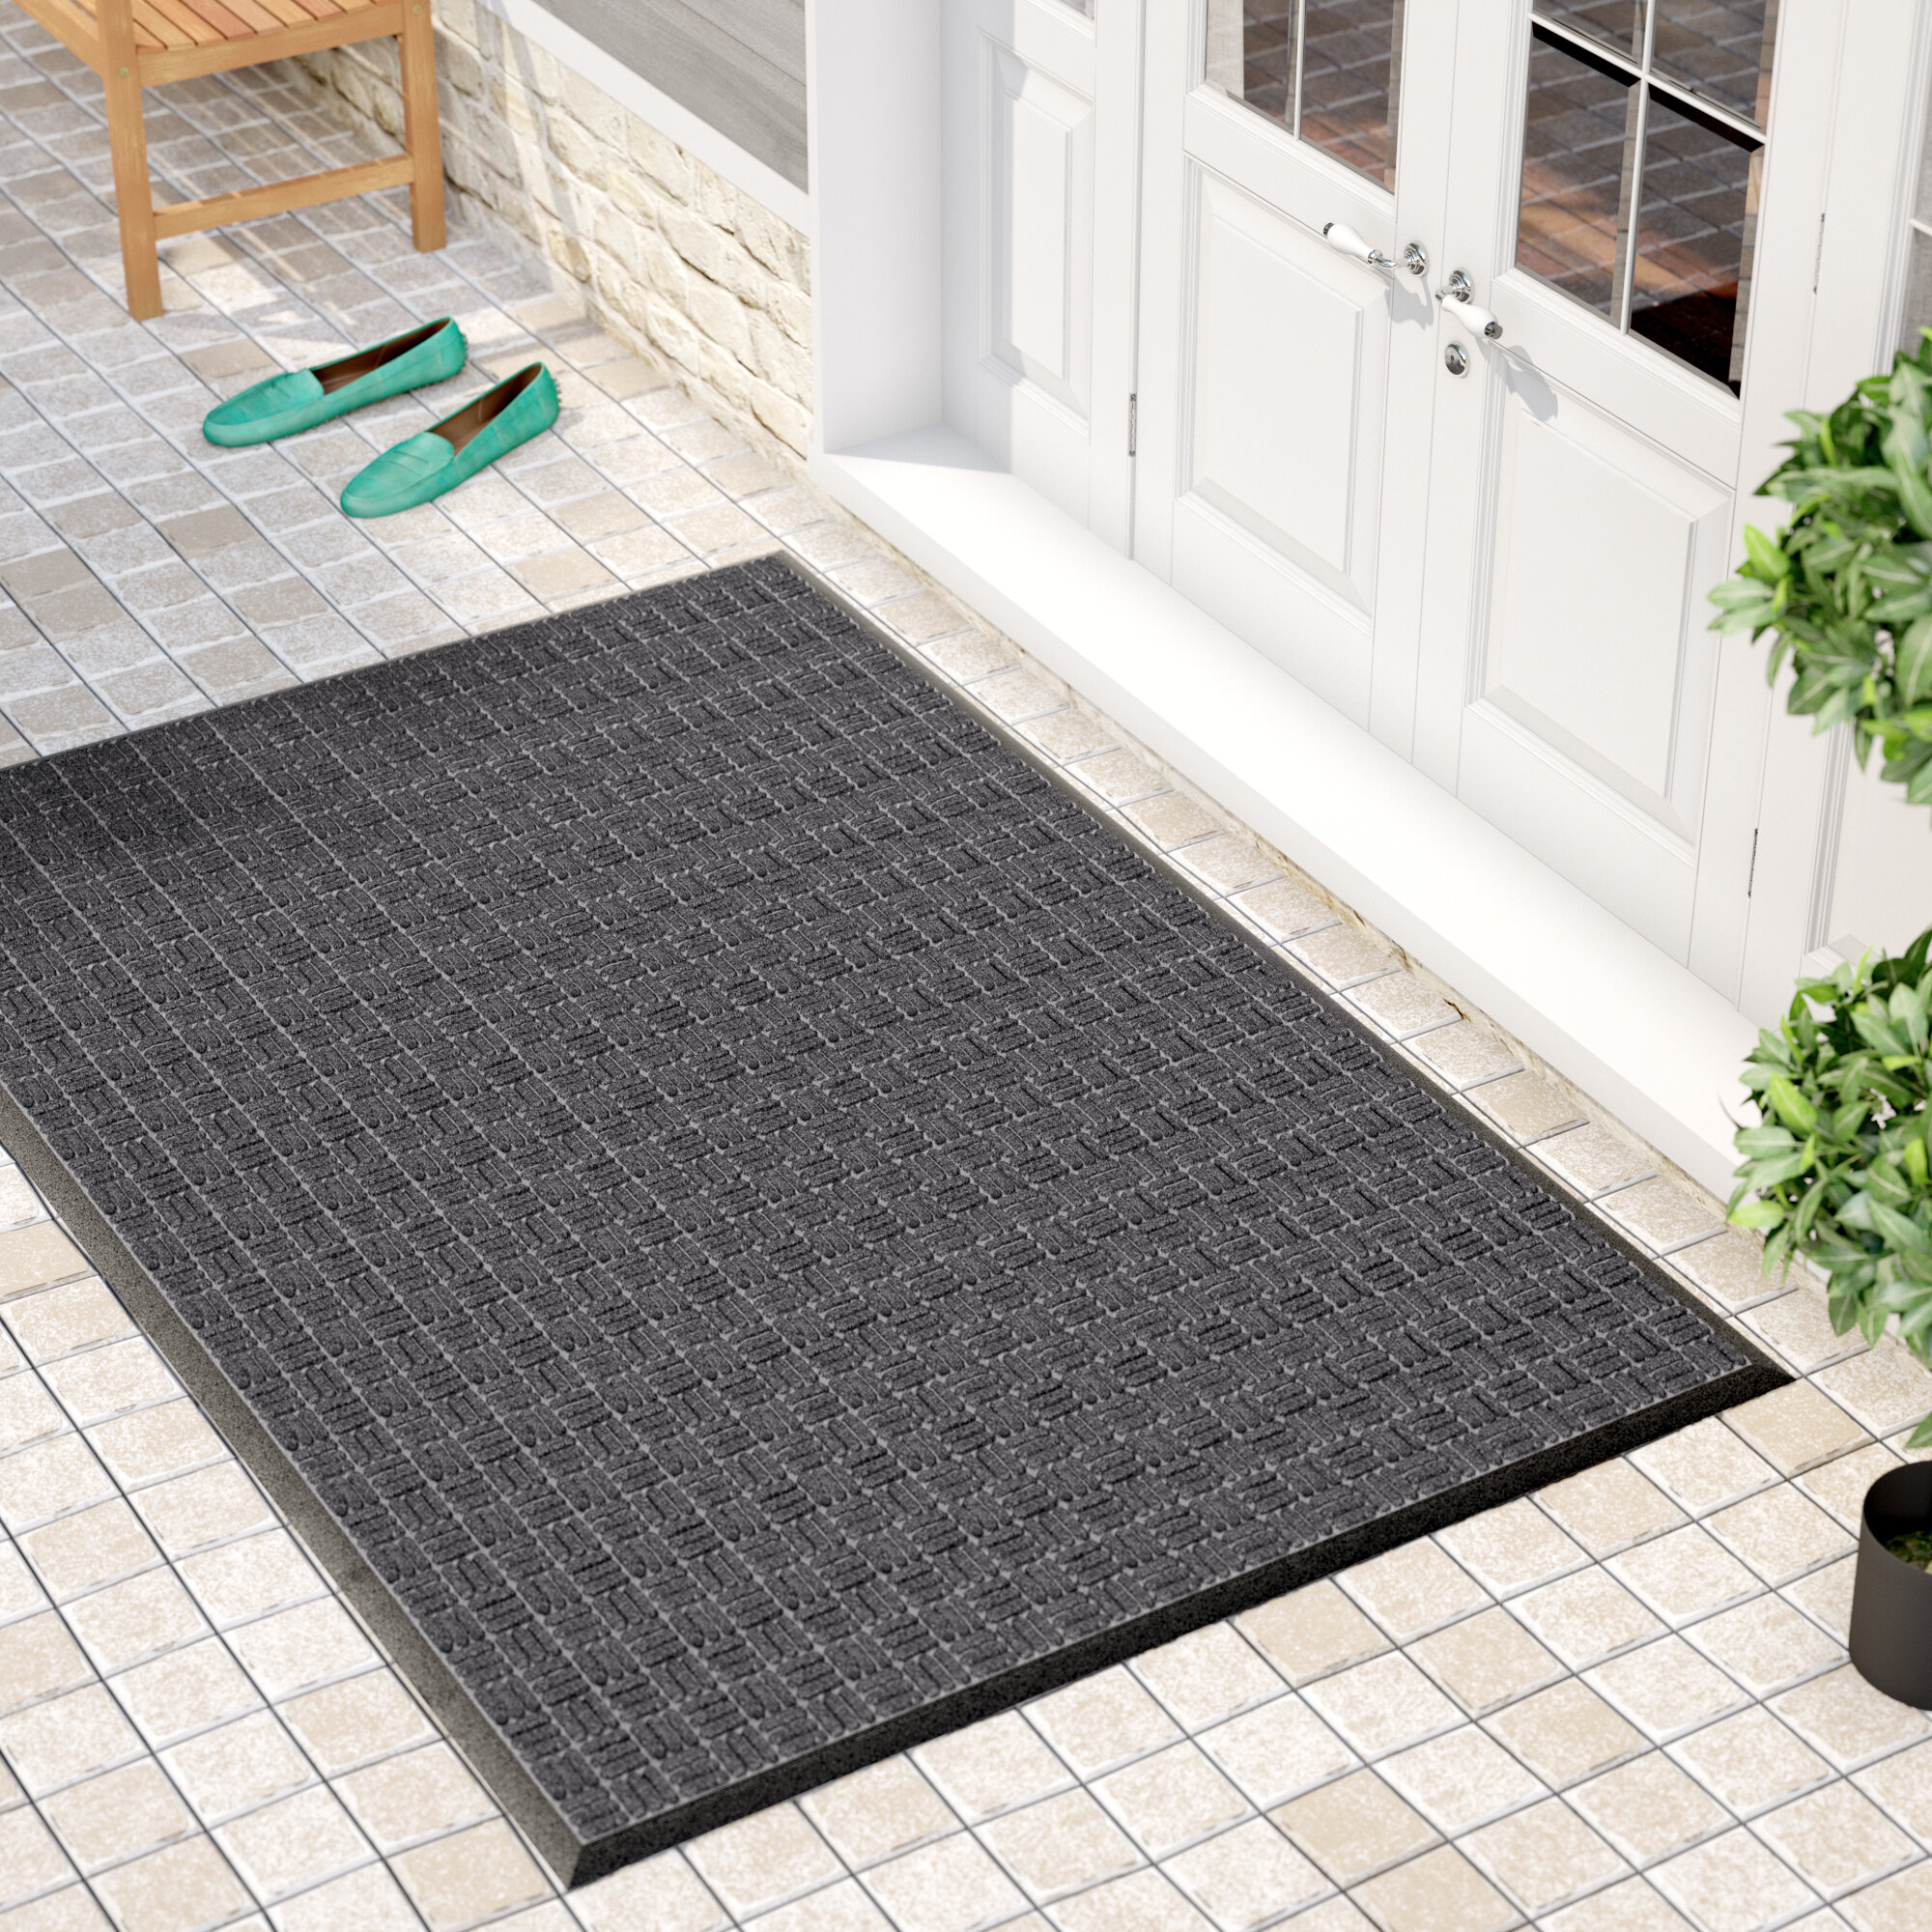 Red Barrel Studio Cobham Water Retainer Rubber Doormat Doormat U0026 Reviews |  Wayfair